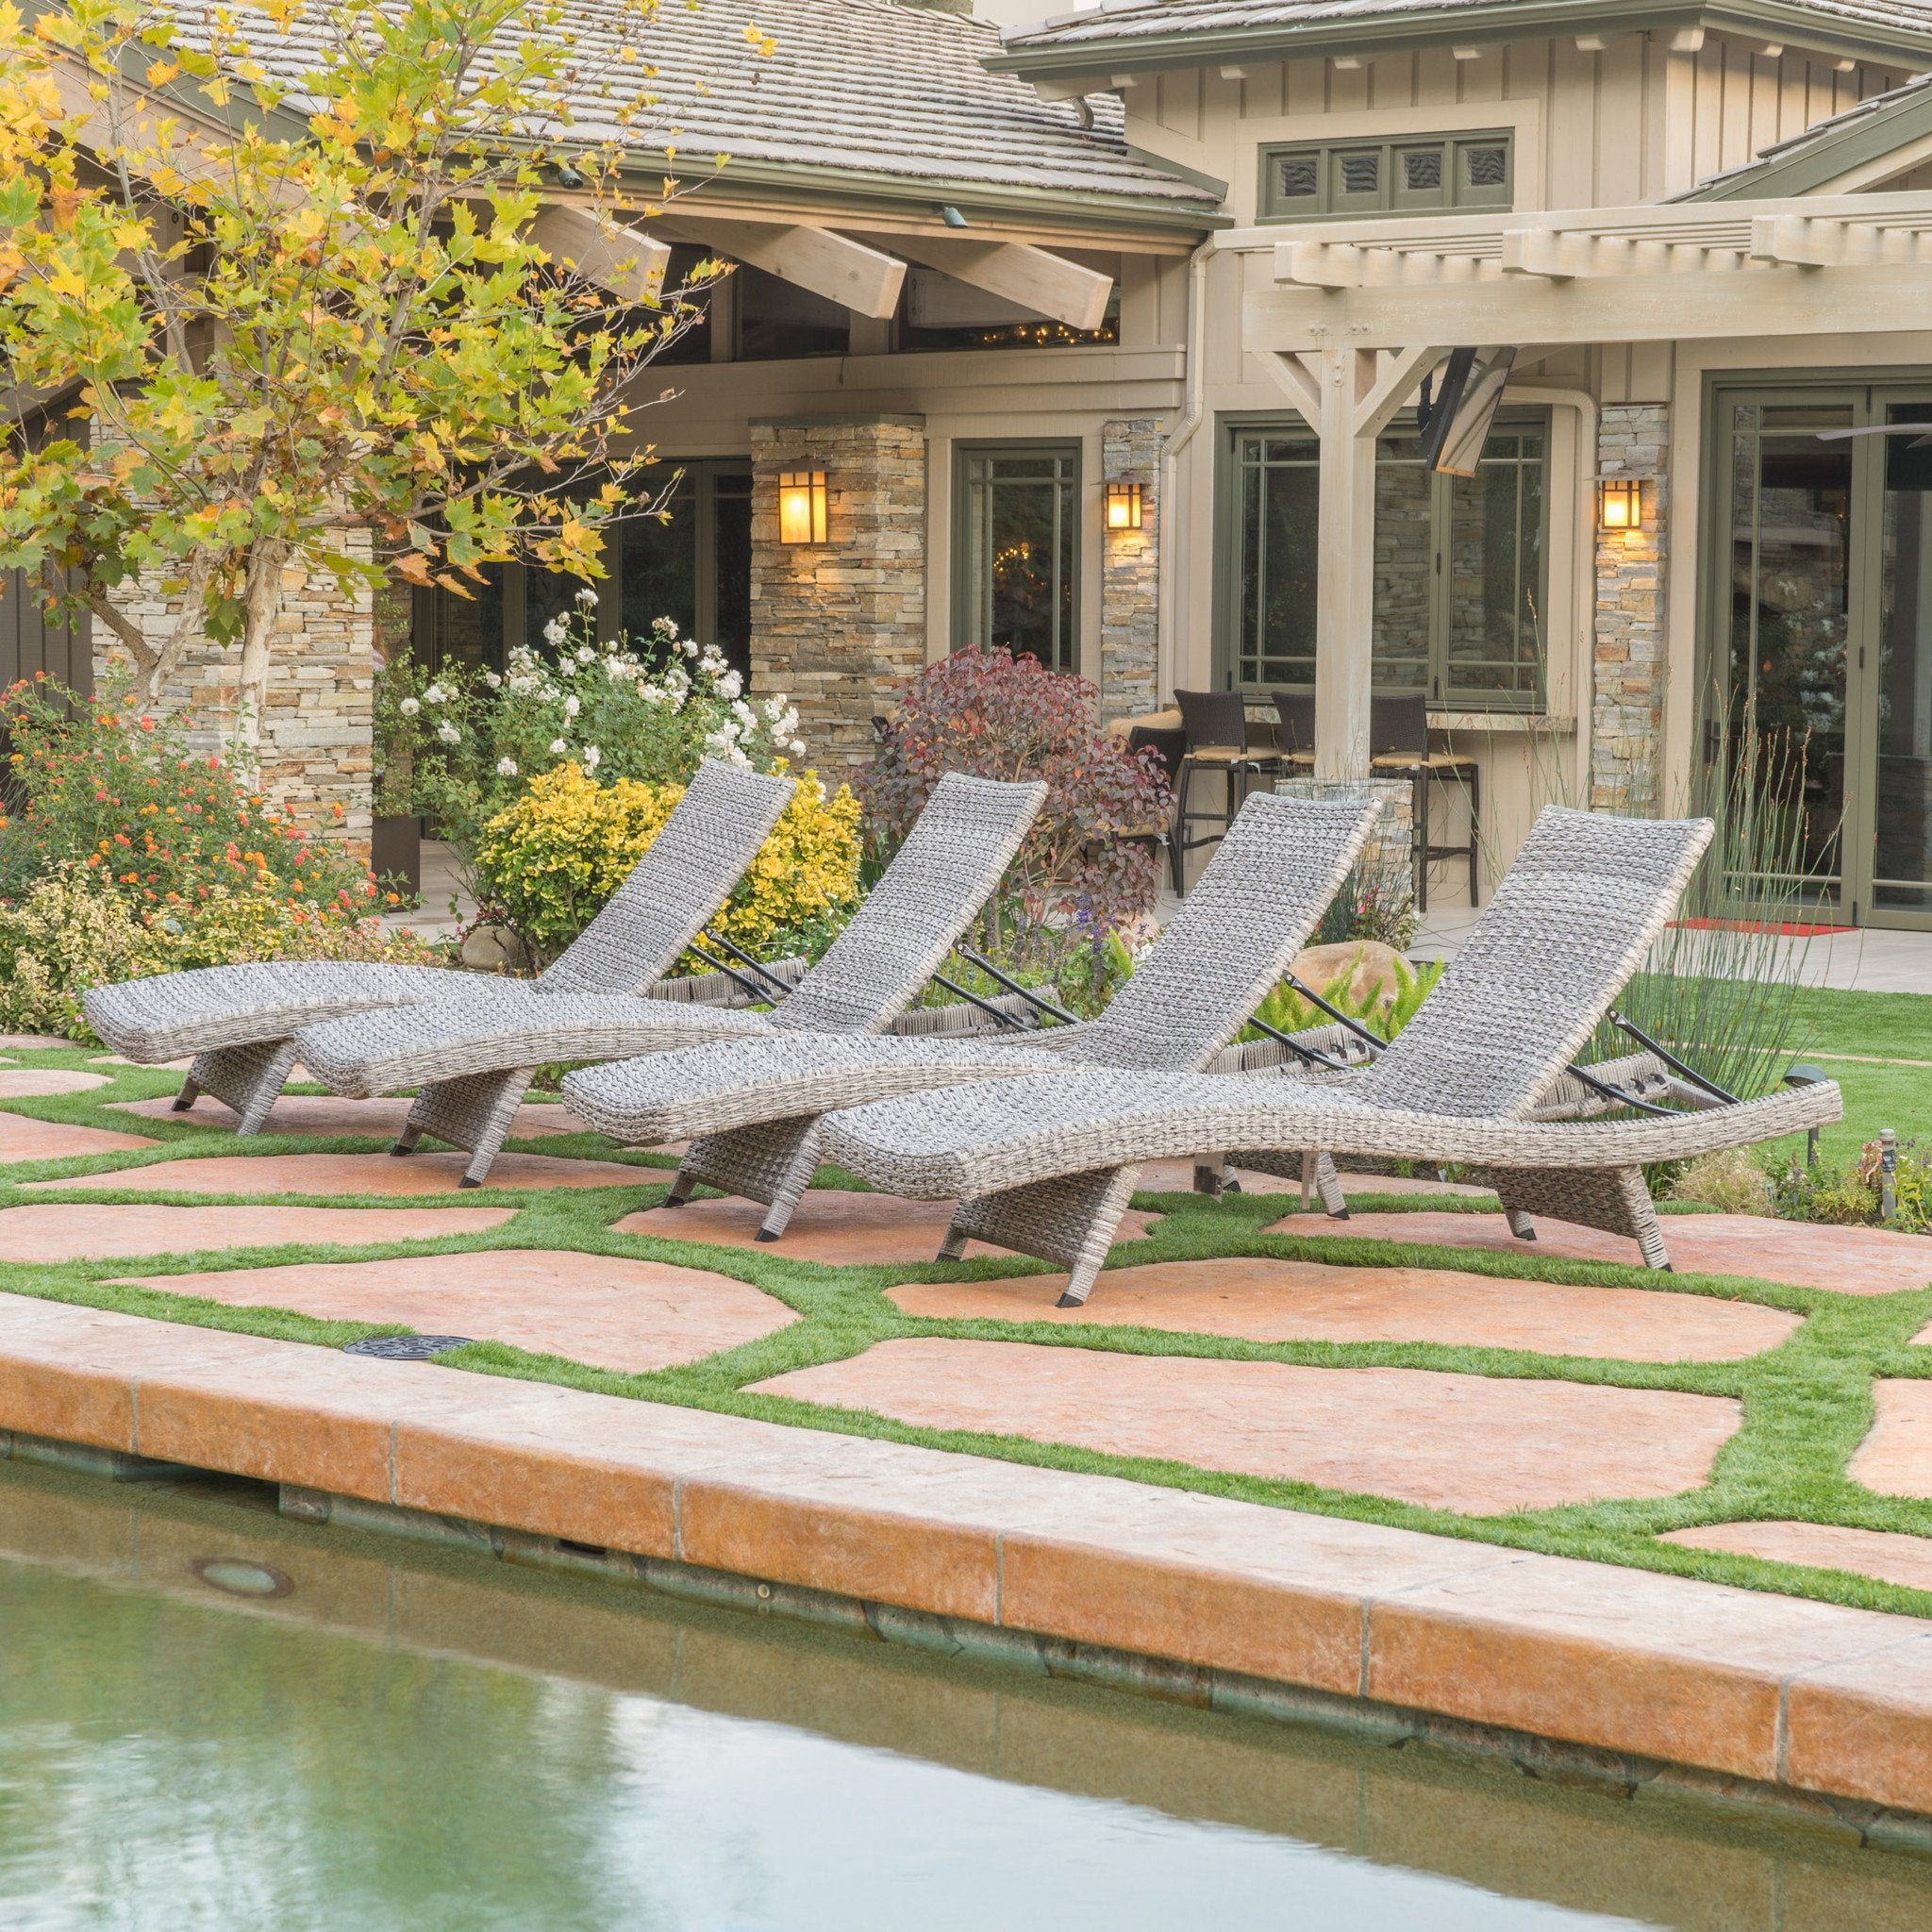 Isle Of Palms Outdoor Grey Wicker Chaise Lounge foto